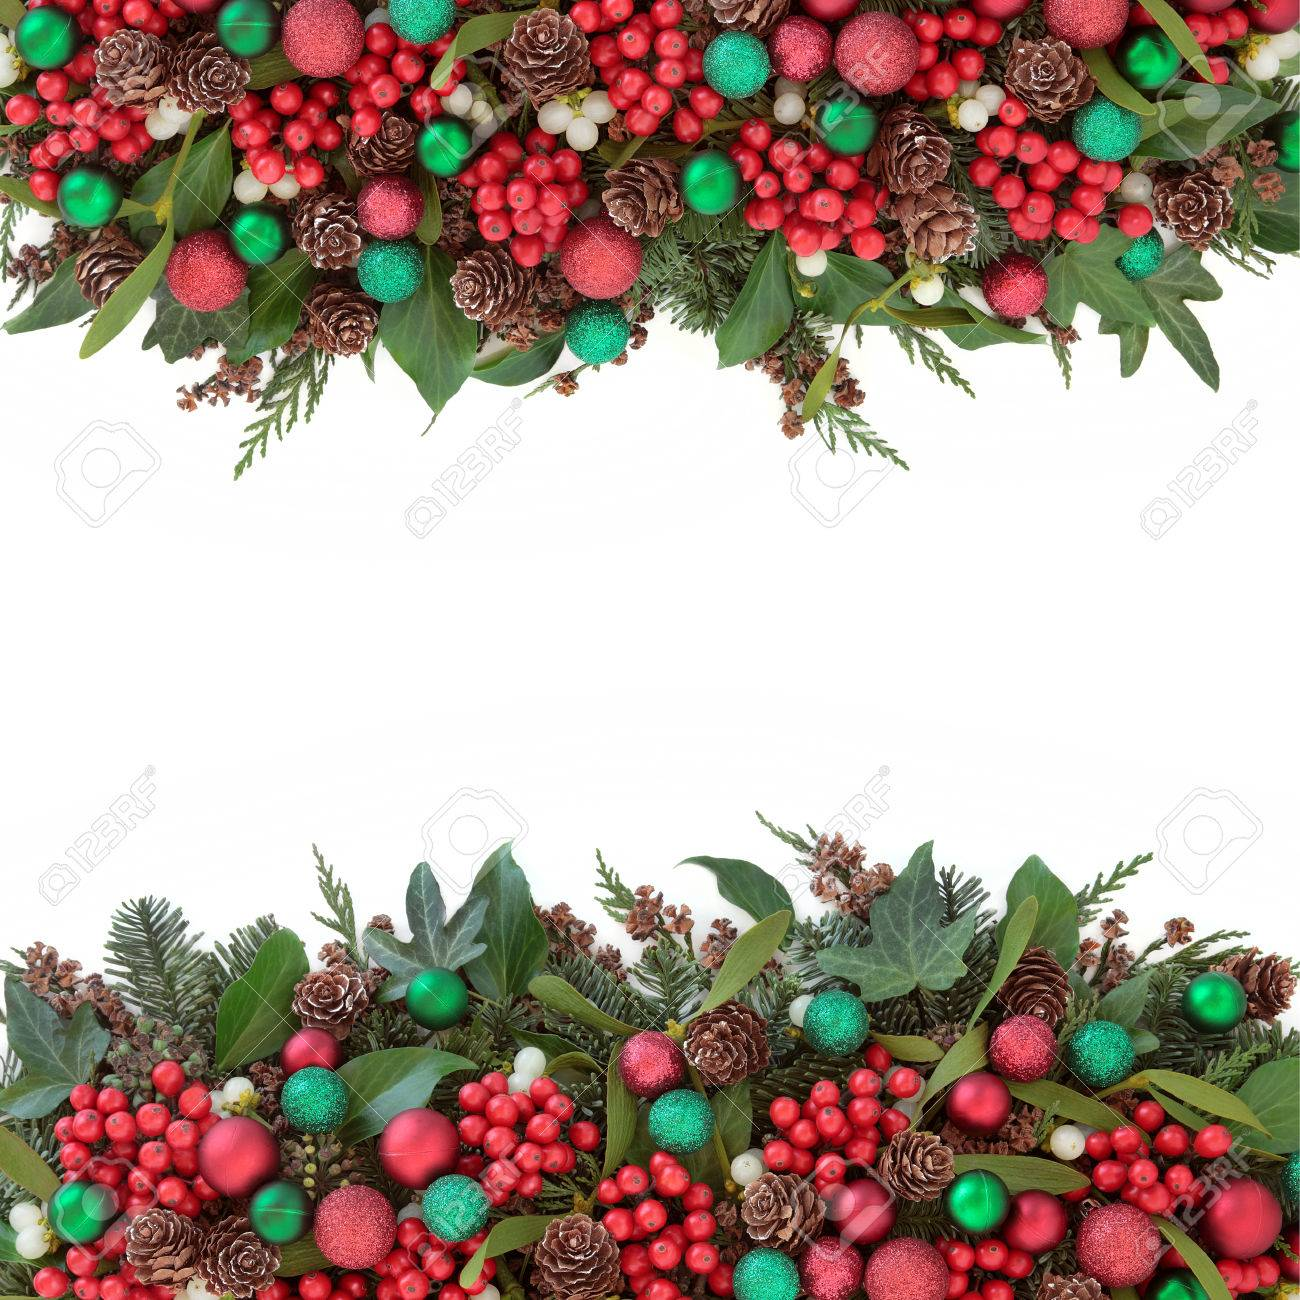 Why is holly a traditional christmas decoration - Christmas Background Border With Red Bauble Decorations Holly Mistletoe Ivy Pine Cones